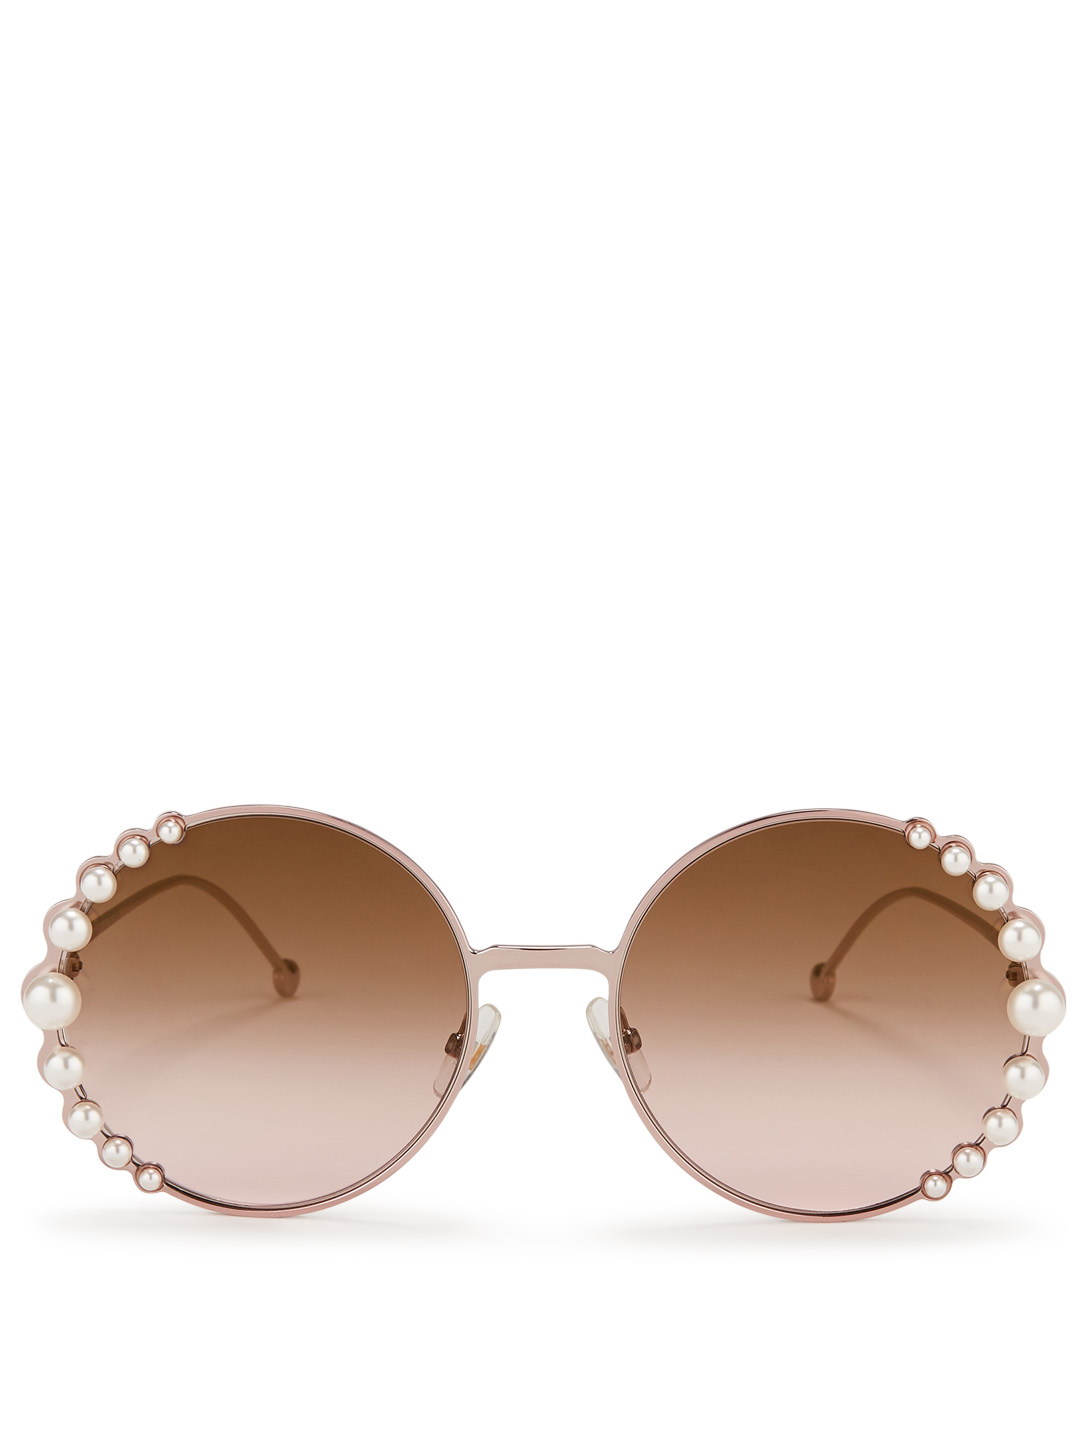 9c86ca1203a FENDI Ribbons And Pearls Round Sunglasses Women s ...